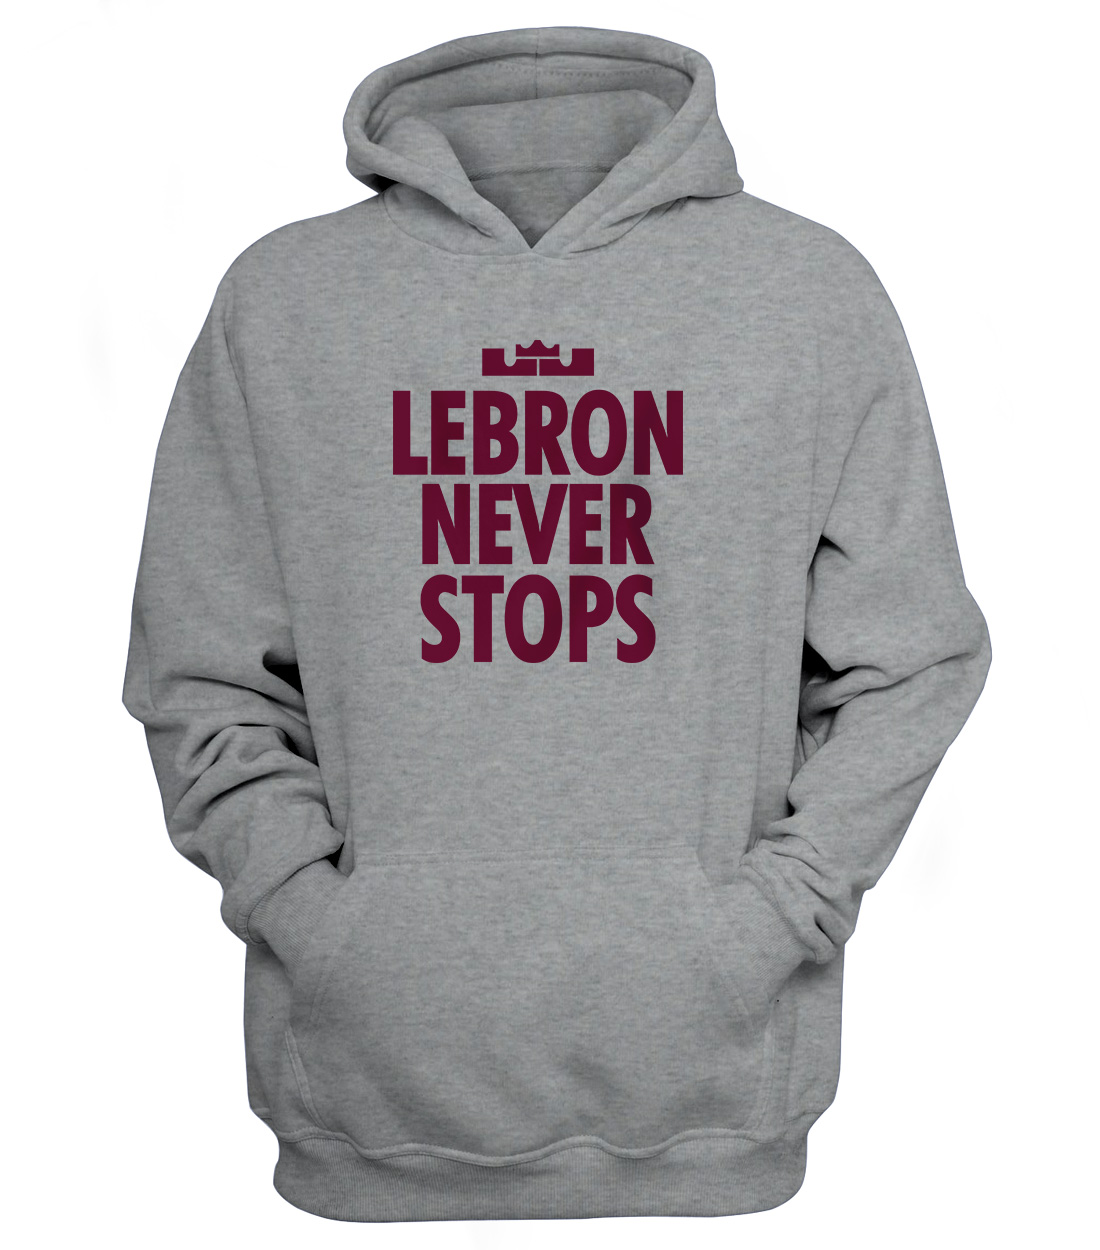 Lebron Never Stops Hoodie (HD-GRY-NP-130-PLYR-LAL-LEBRON.NVR.STP.)